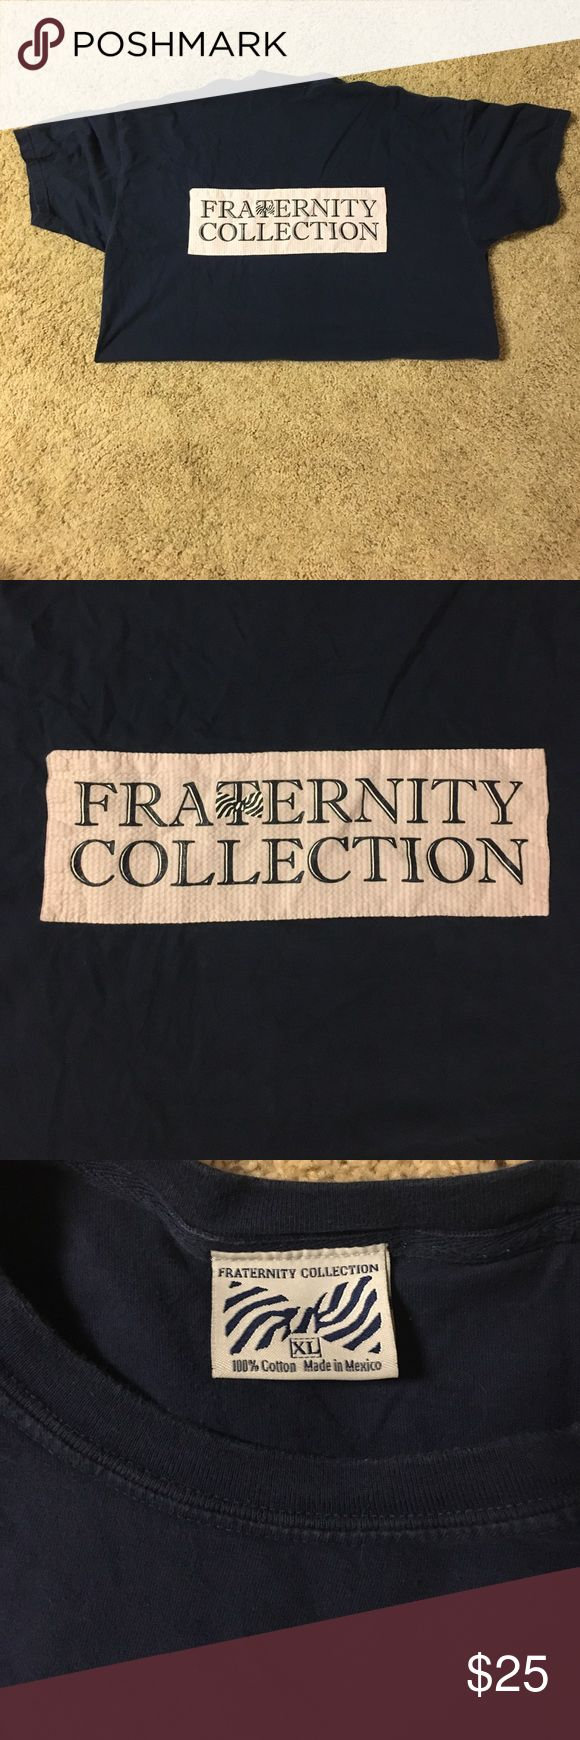 Fraternity Collection Tshirt Fraternity Collection XL Tshirt. Navy blue and pink. Short sleeve with seersucker pocket. I've worn it once and it doesn't fit right. It's too long on me fraternity collection Tops Tees - Short Sleeve